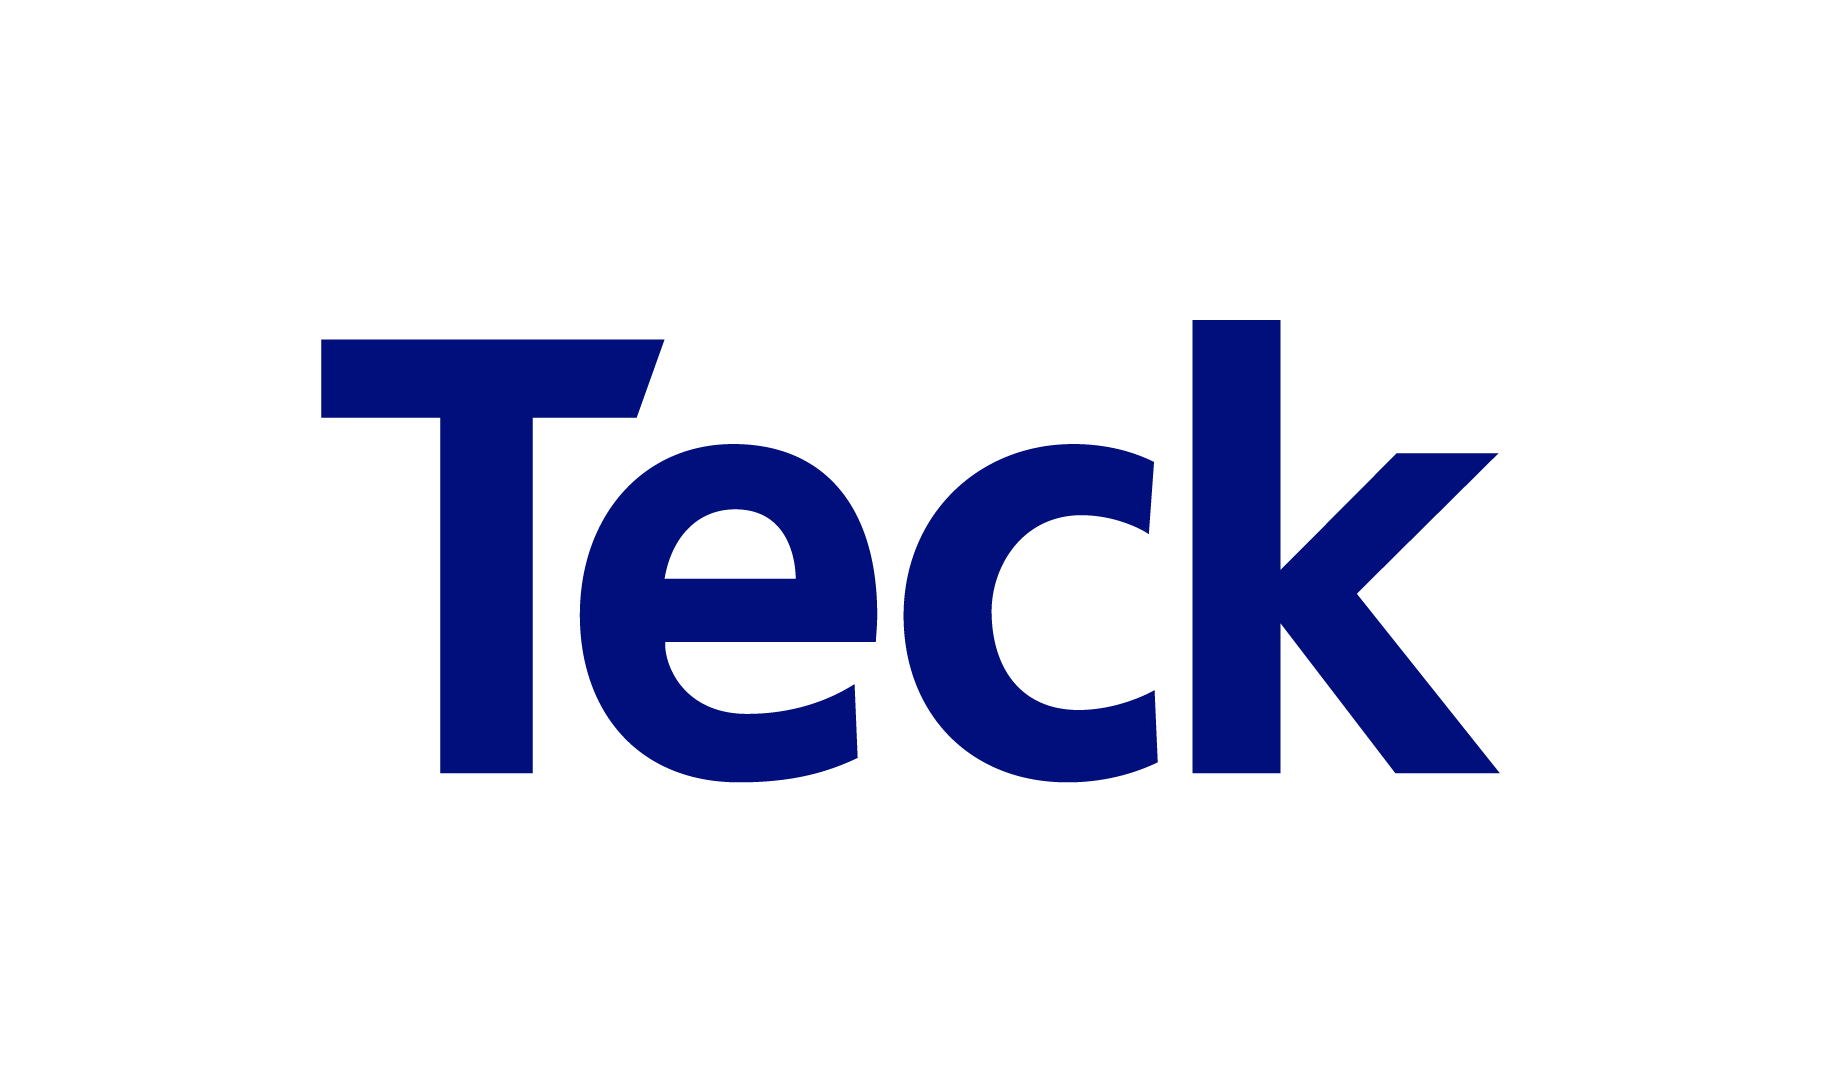 Teck Announces Goal of Carbon Neutrality by 2050